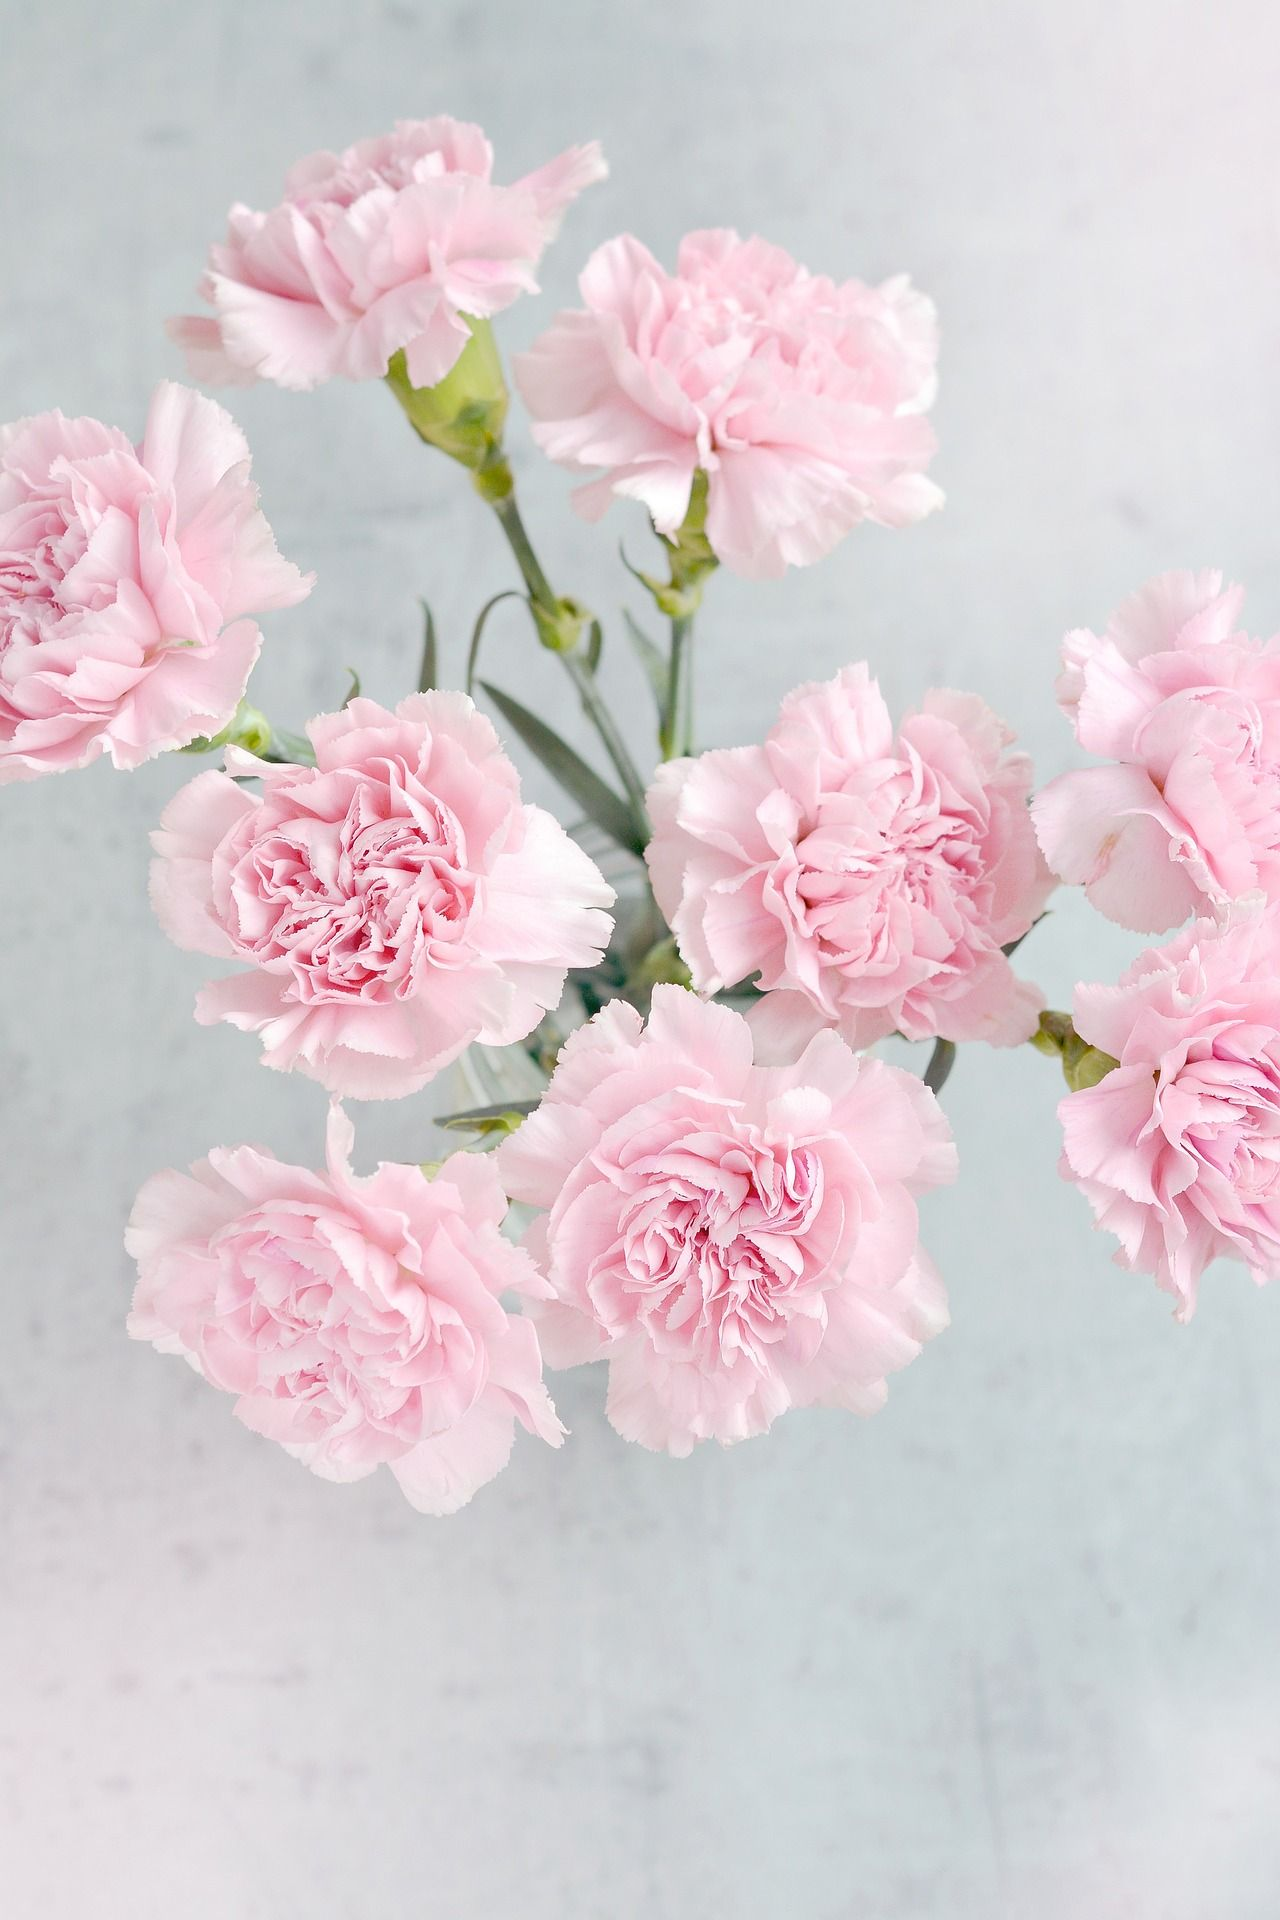 To Extend The Life Of The Flowers Change The Water In The Container Trim The Bottom Of The Stems And Add Another Drop Carnations Flower Care Pink Carnations